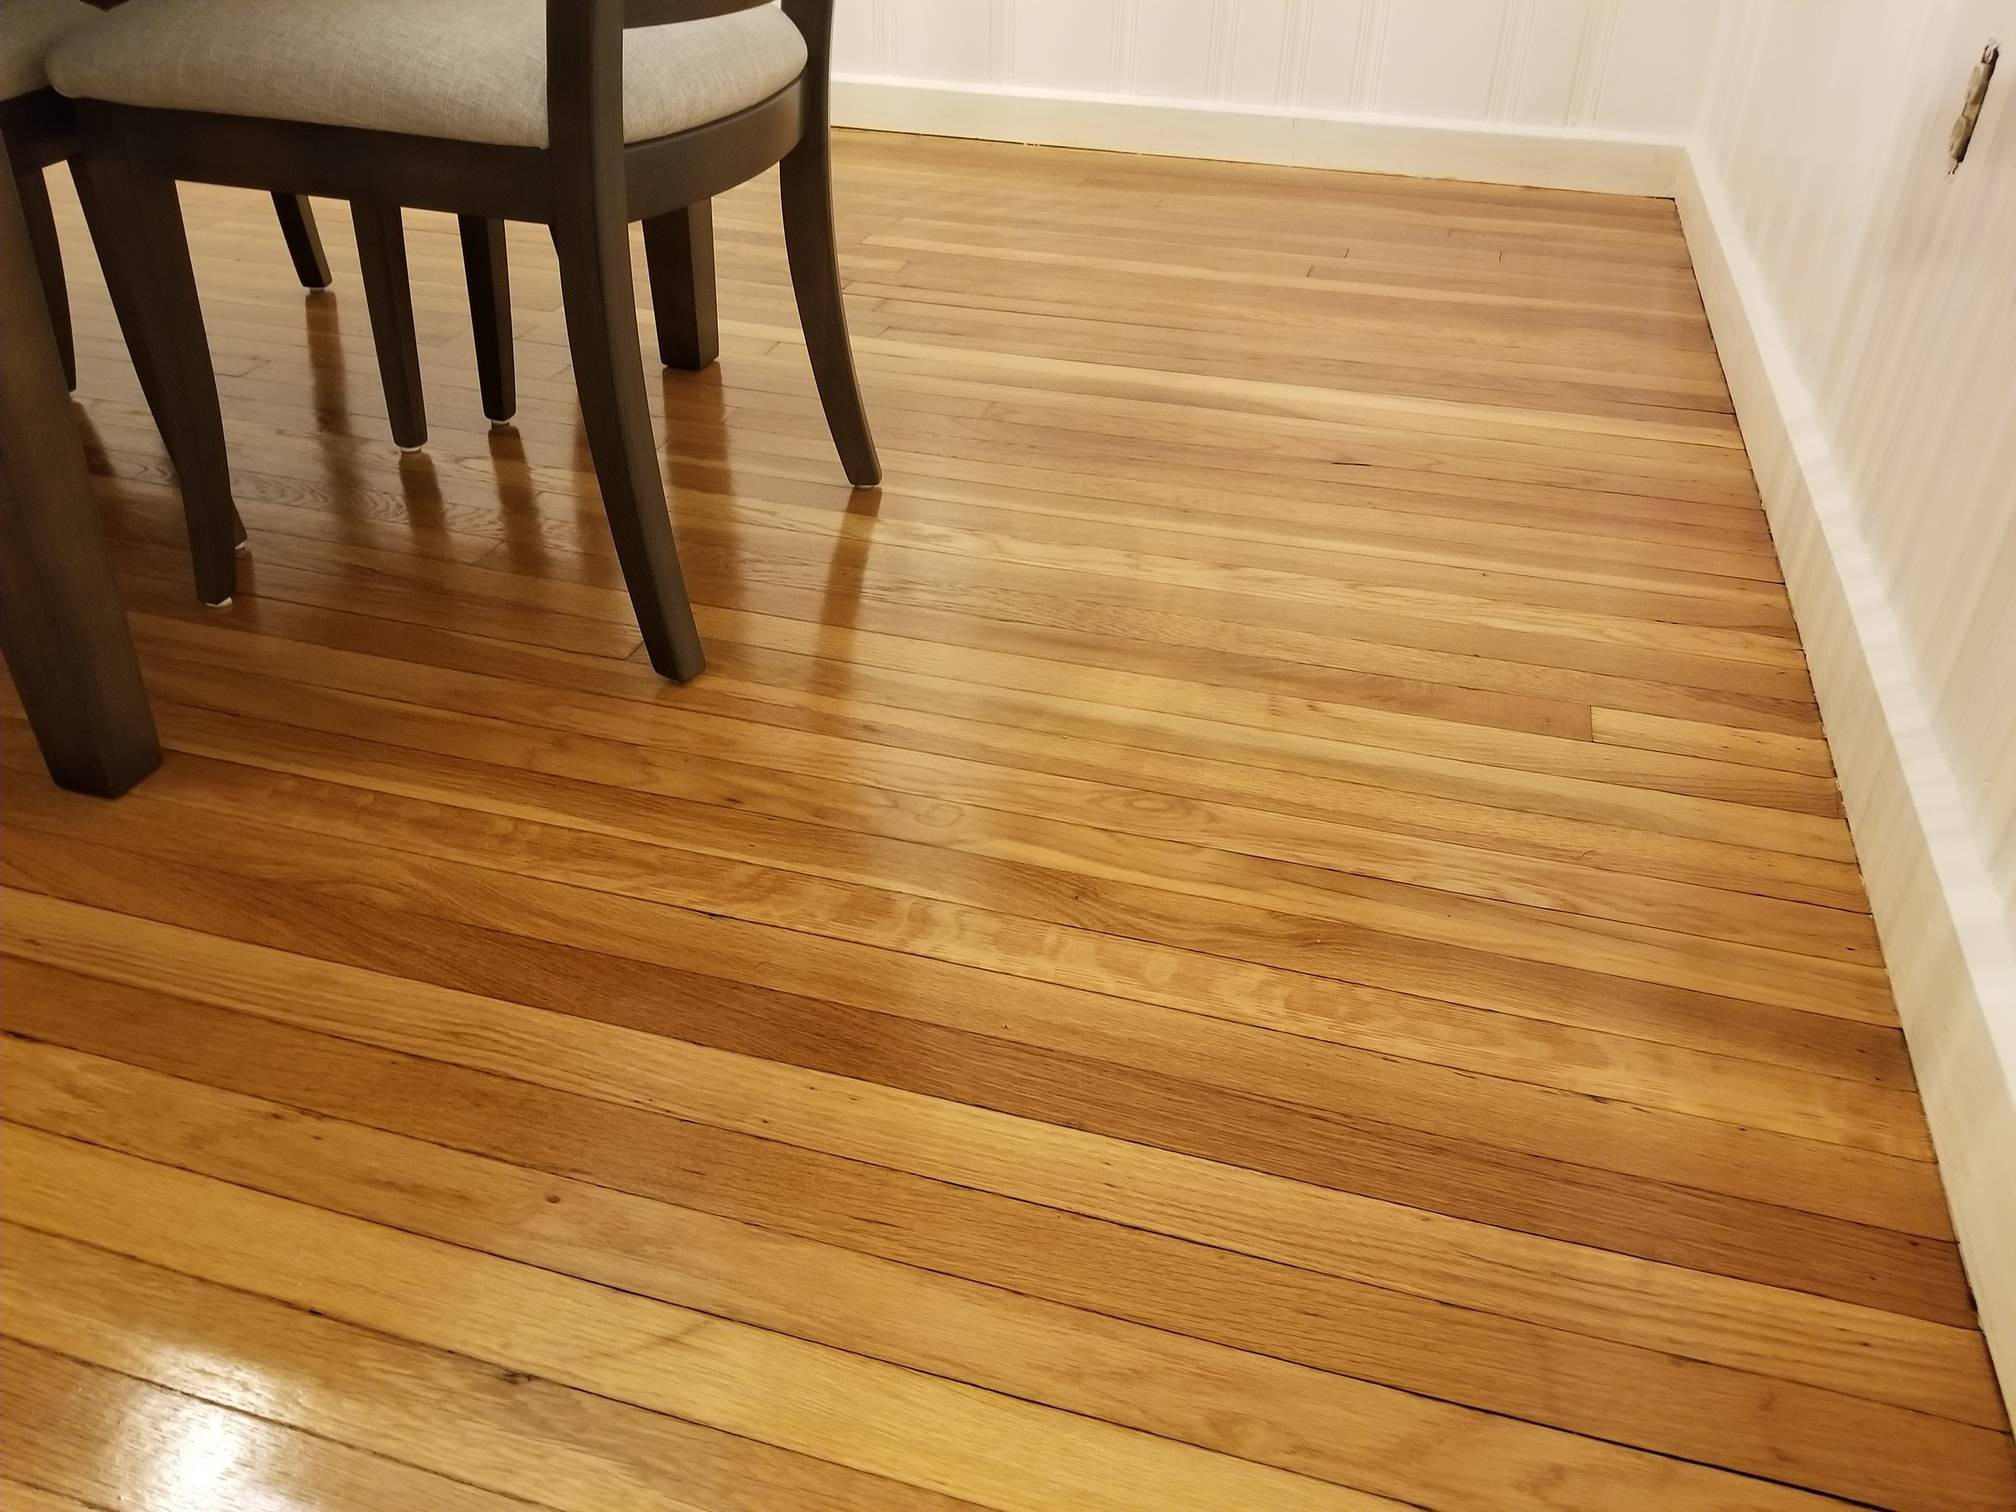 How To Clean And Refinish Old Hardwood Floors  Carpet